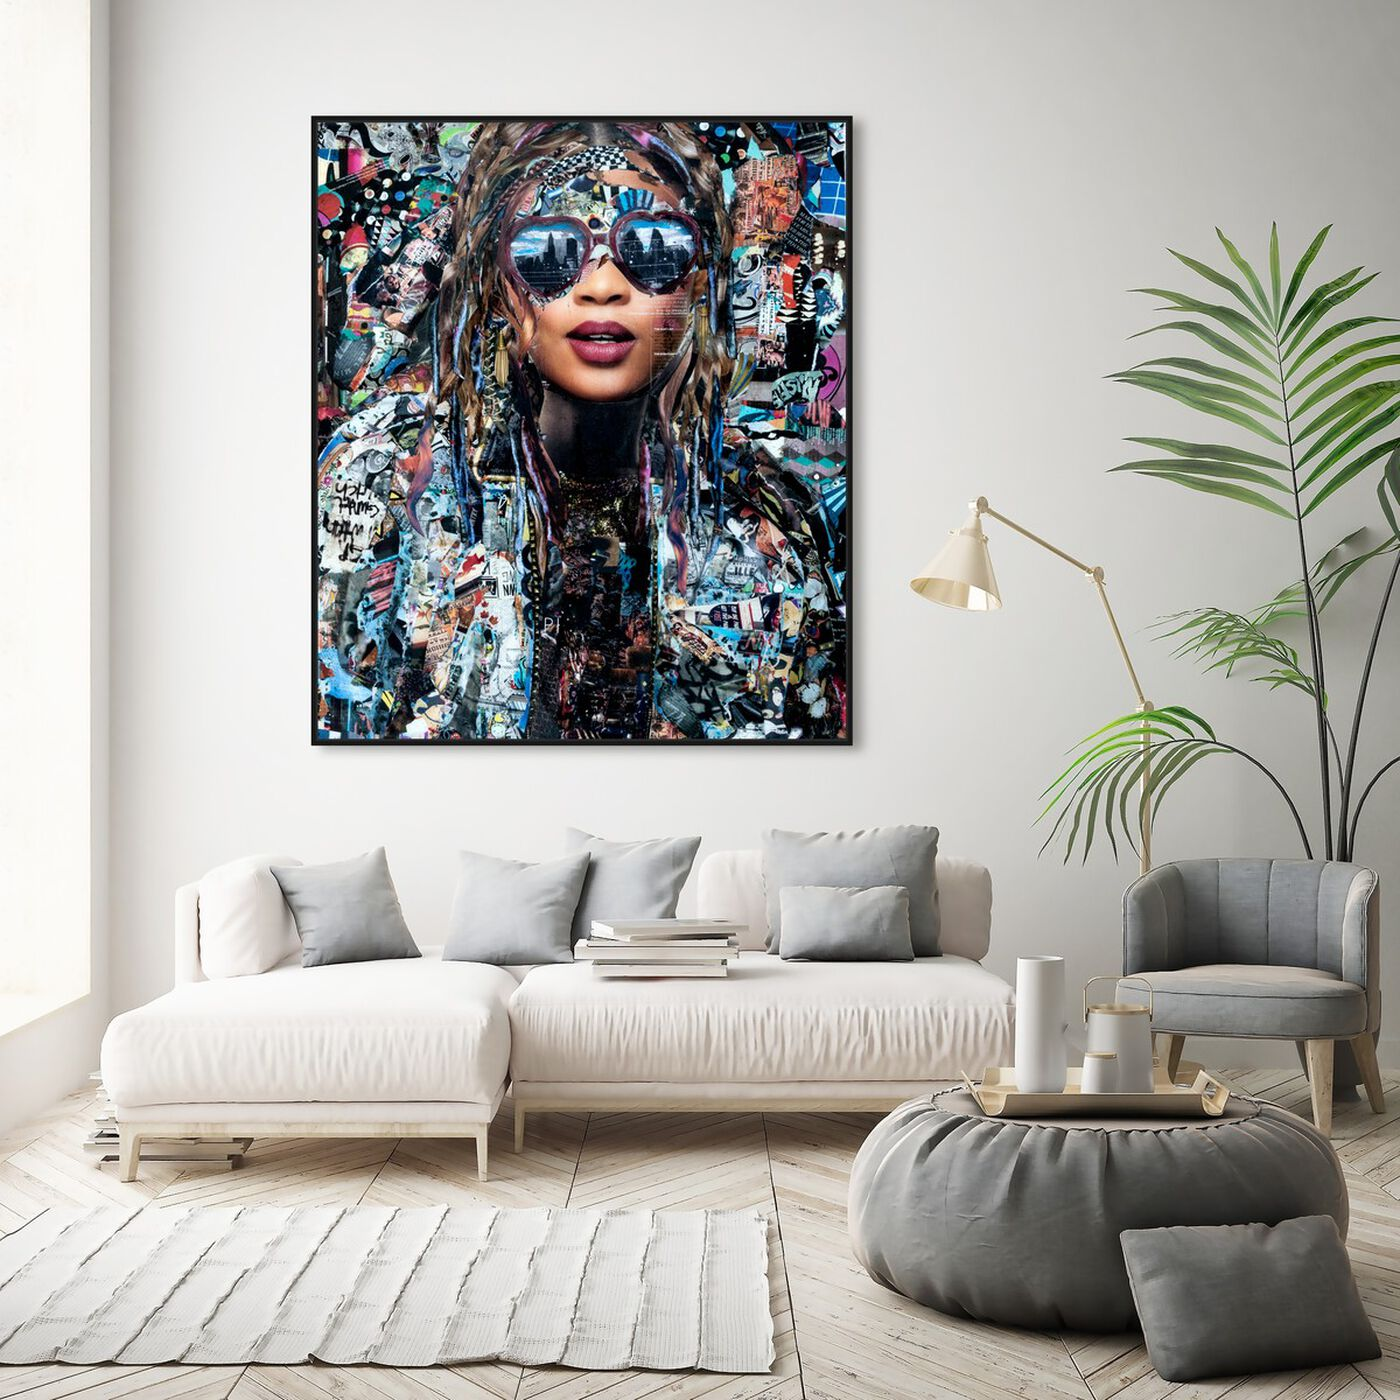 Hanging view of Katy Hirschfeld - OnlyDreaming featuring fashion and glam and portraits art.